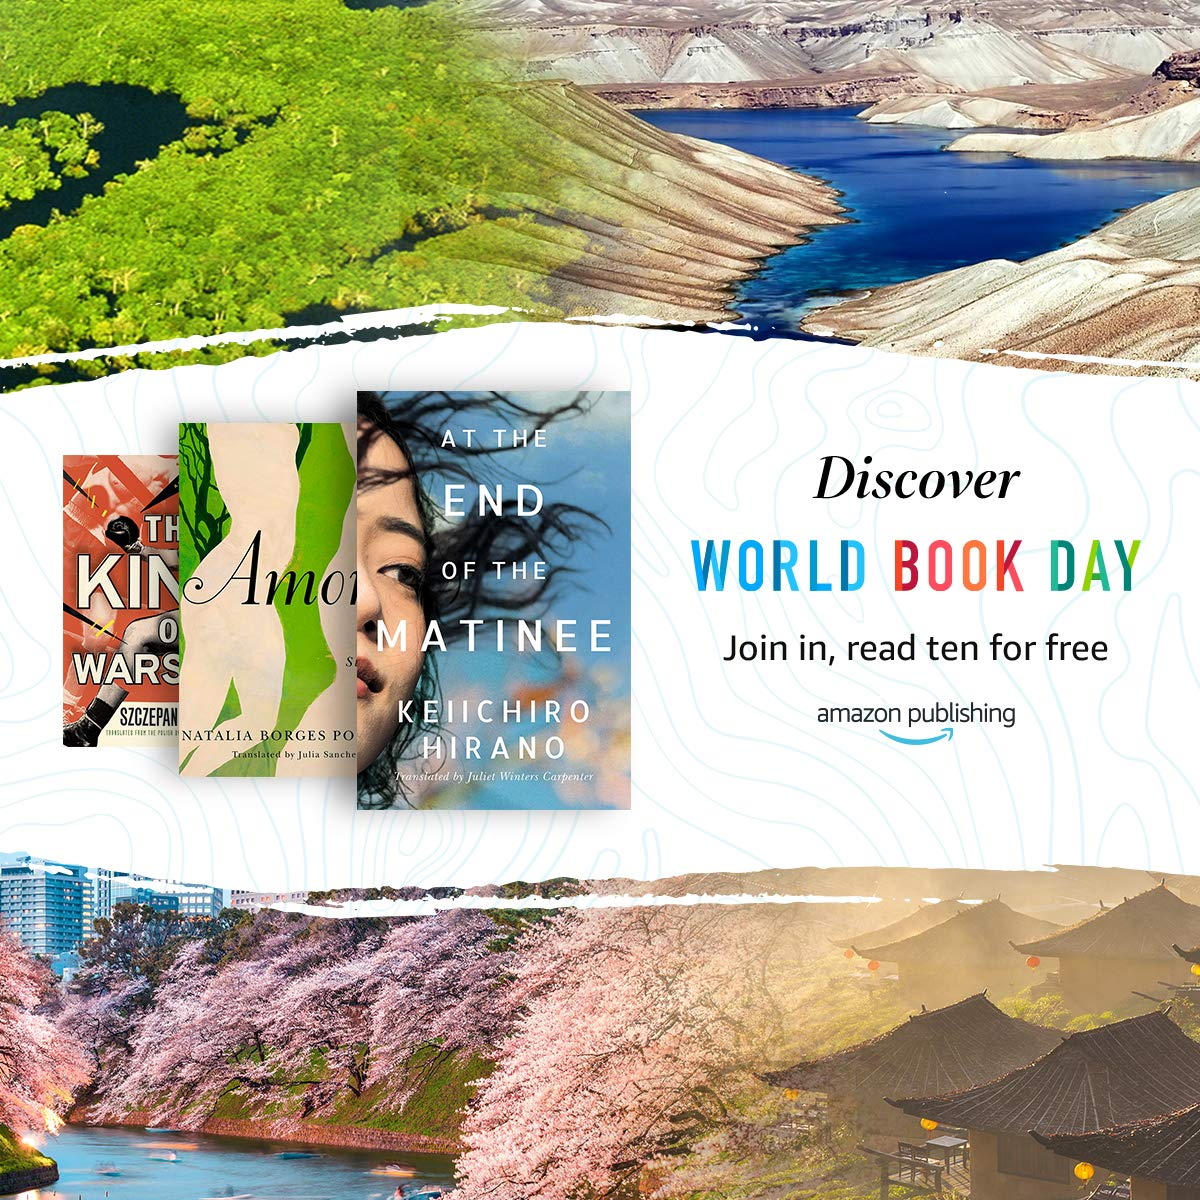 Discover World Book Day